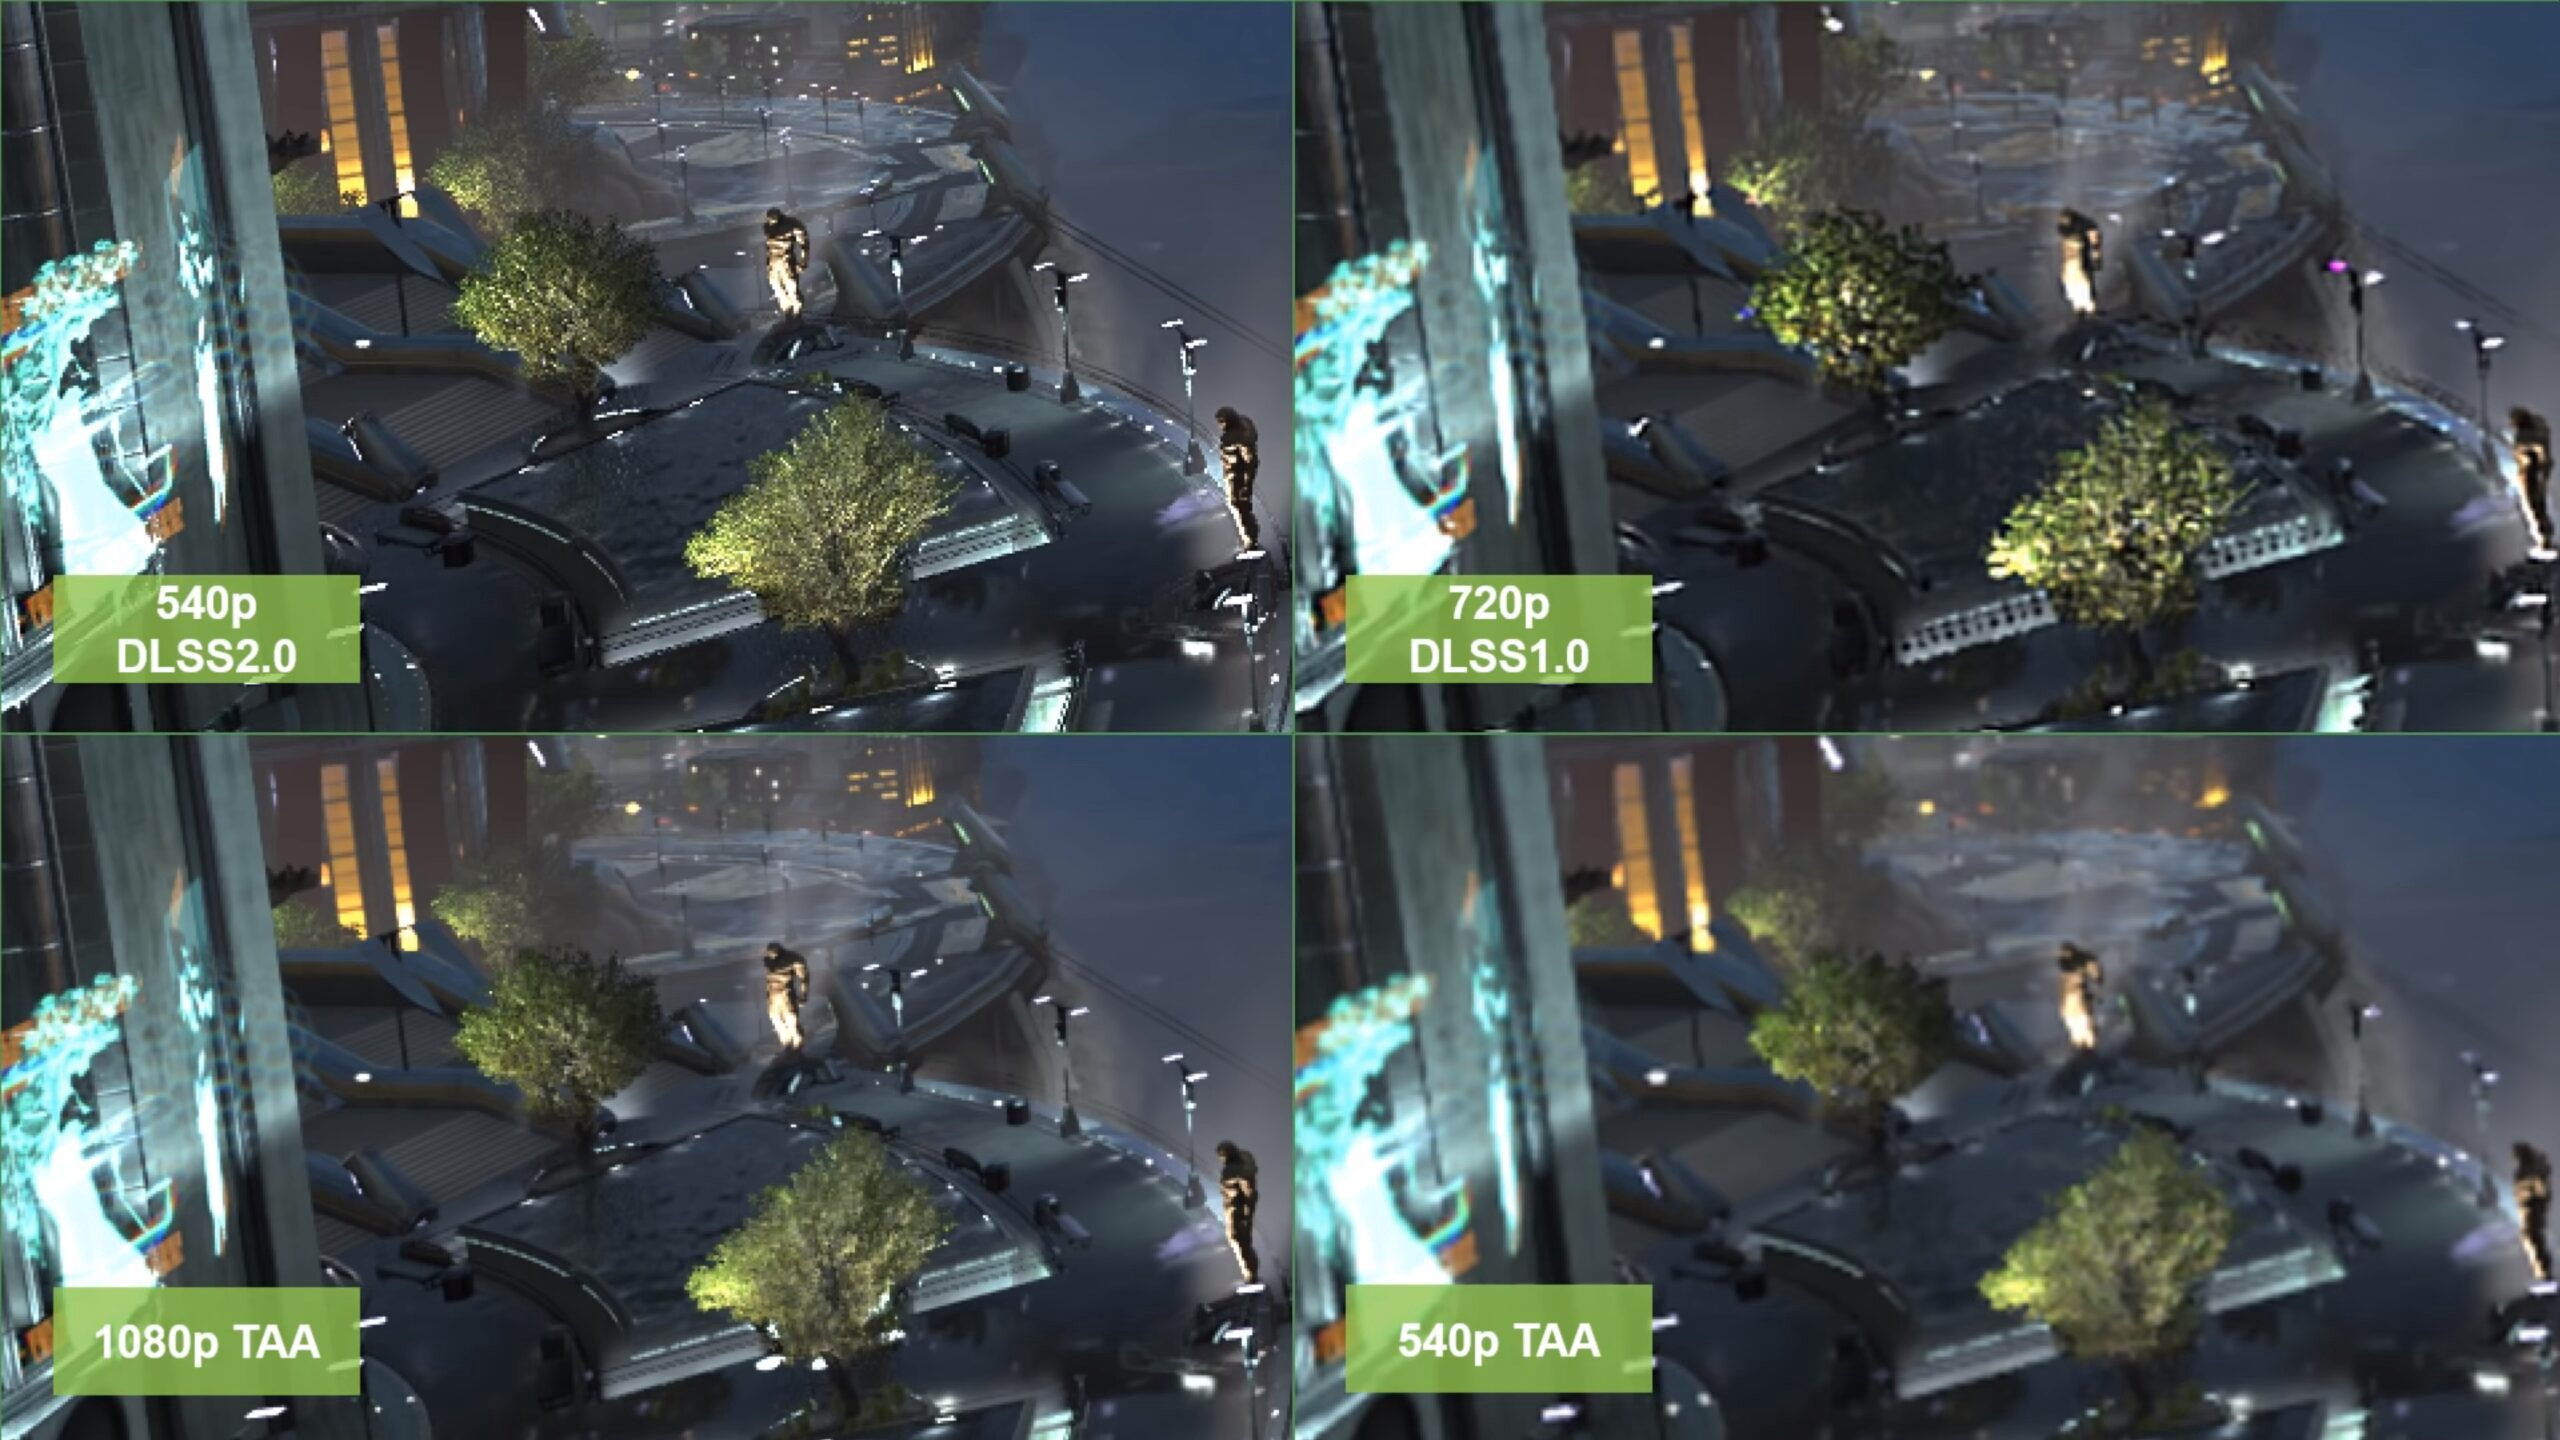 DLSS 2.0 NVIDIA tech comparison vs DLSS 1.0